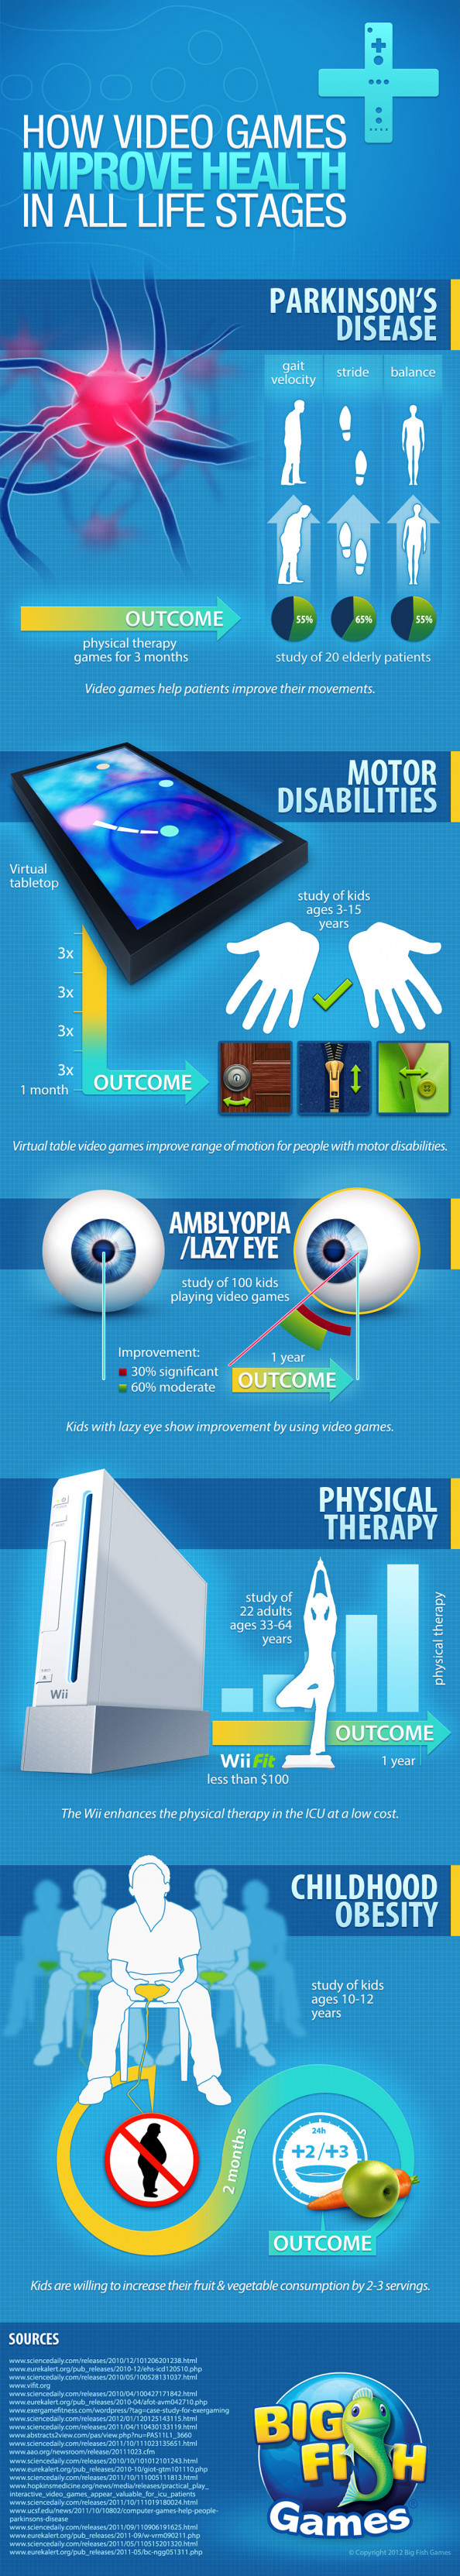 How Video Games Improve Health Infographic